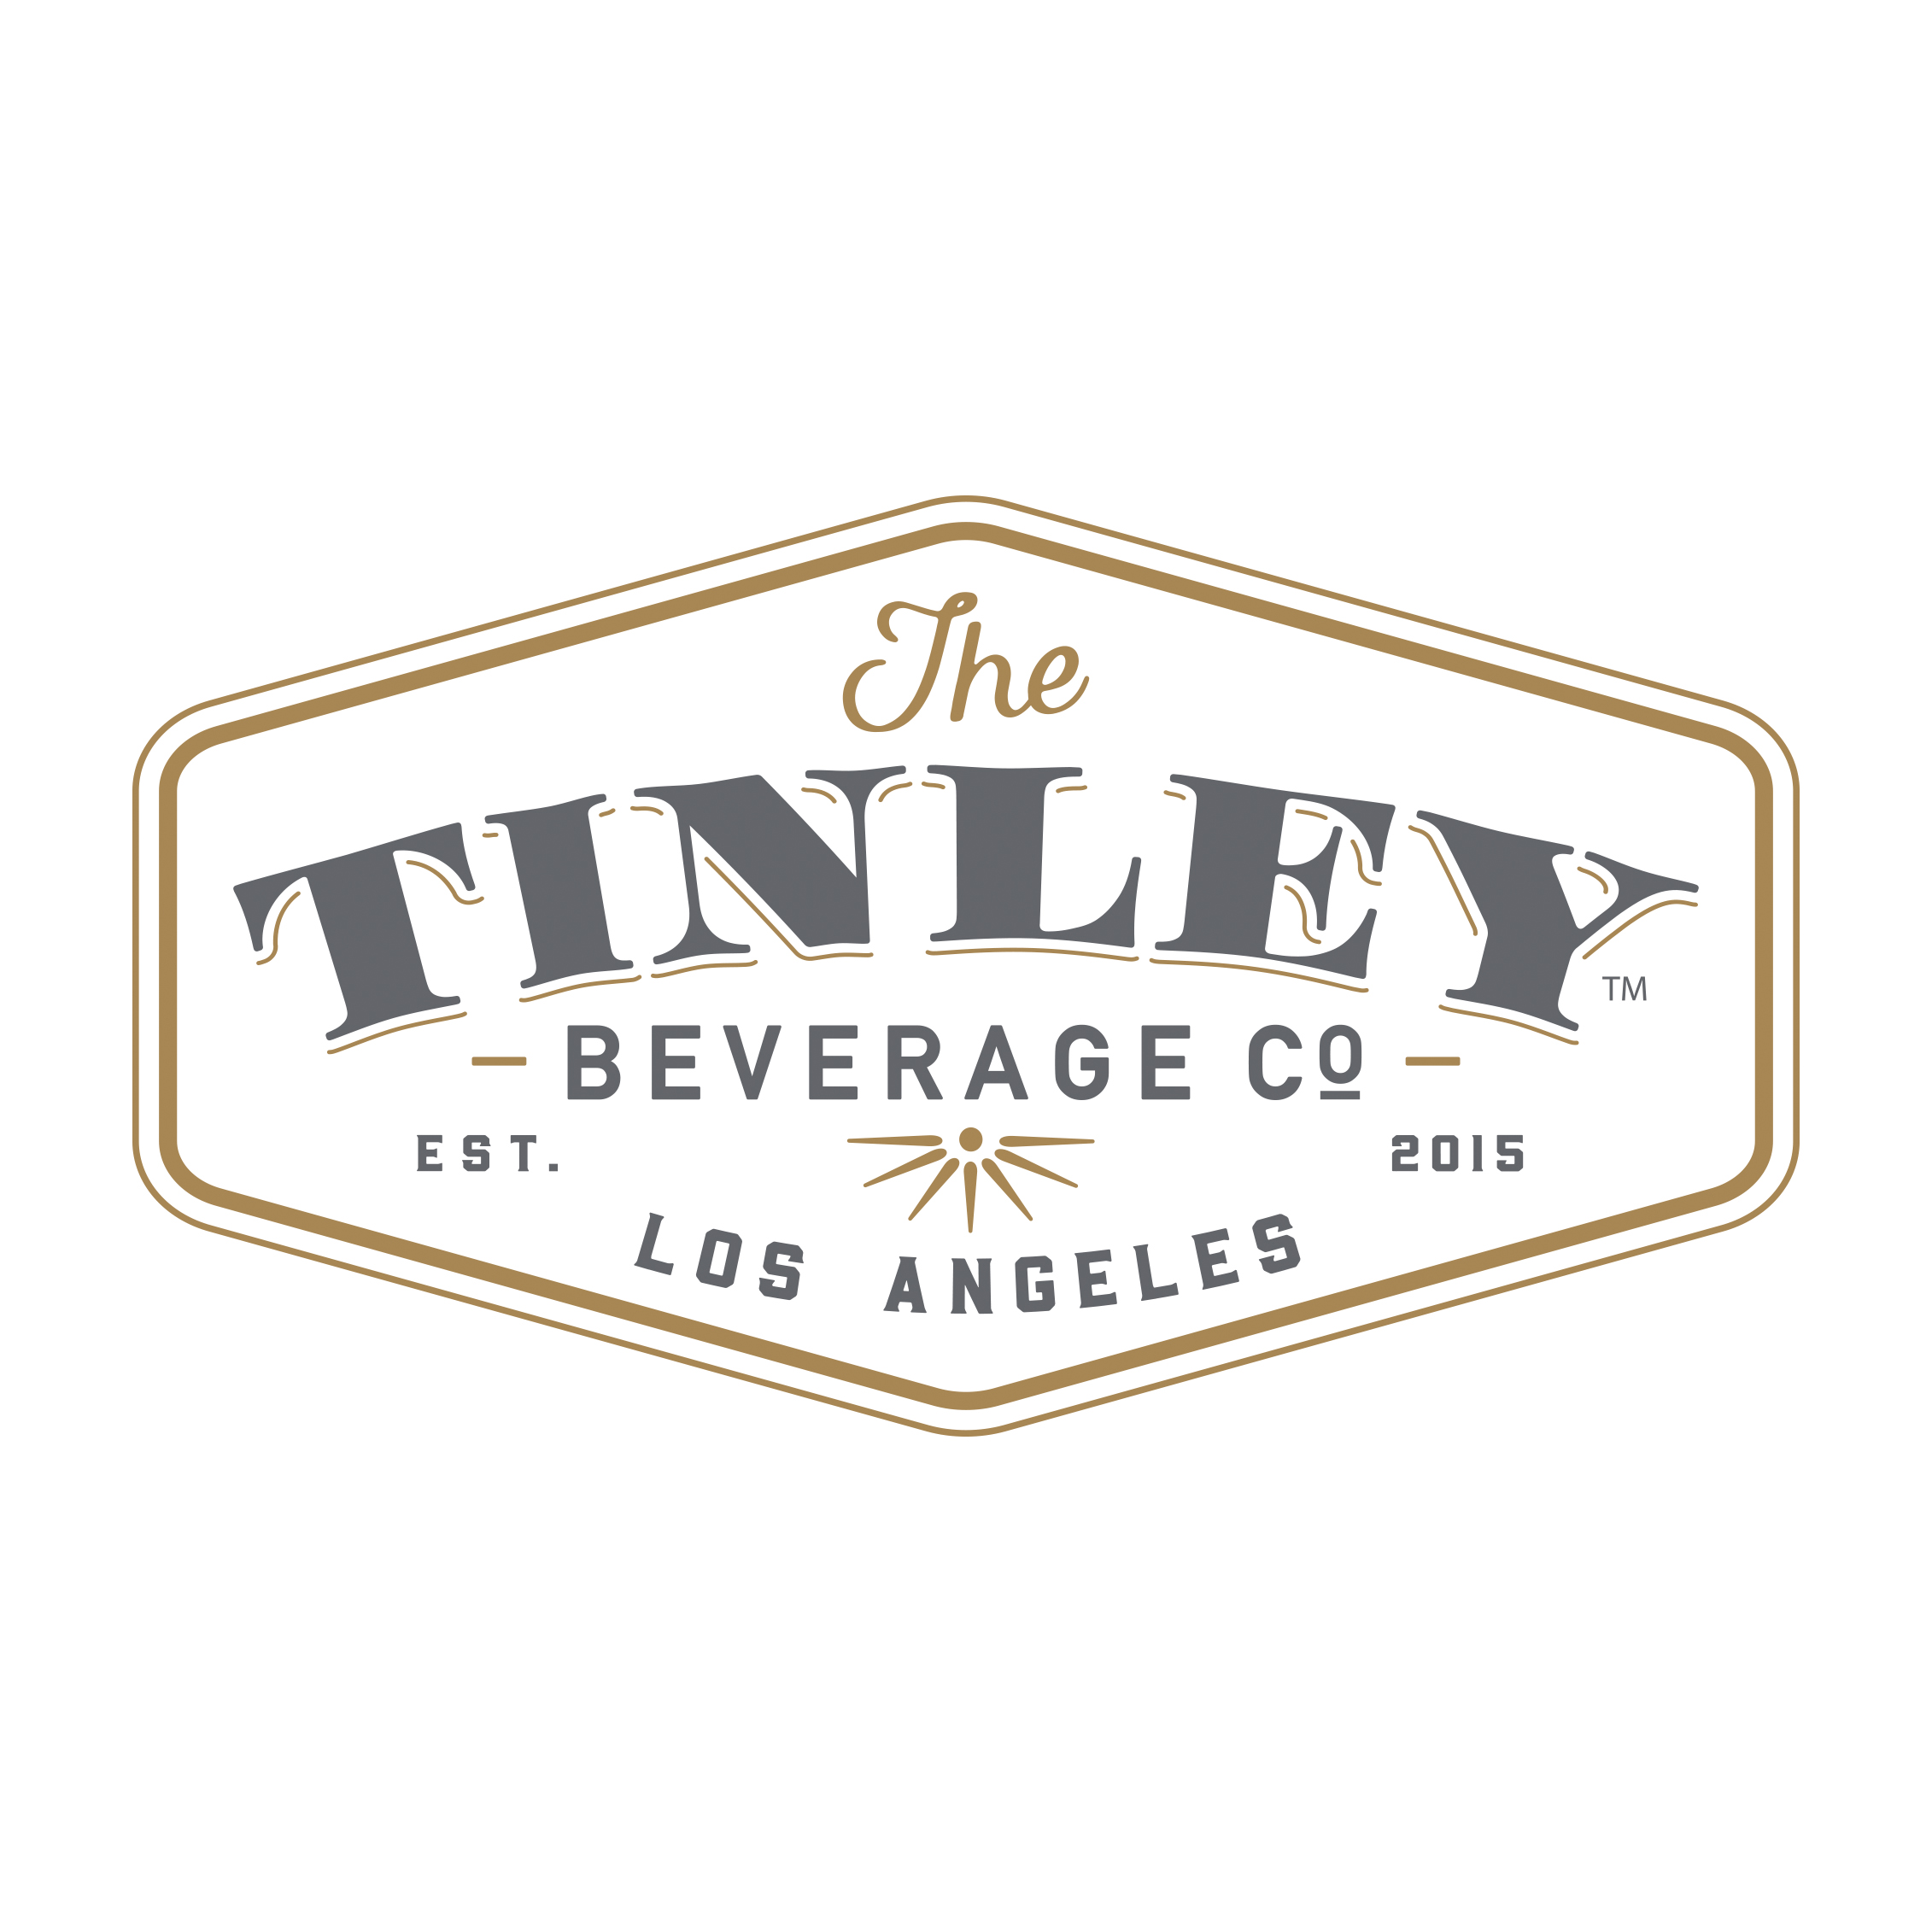 tinley logo_color_square.JPG